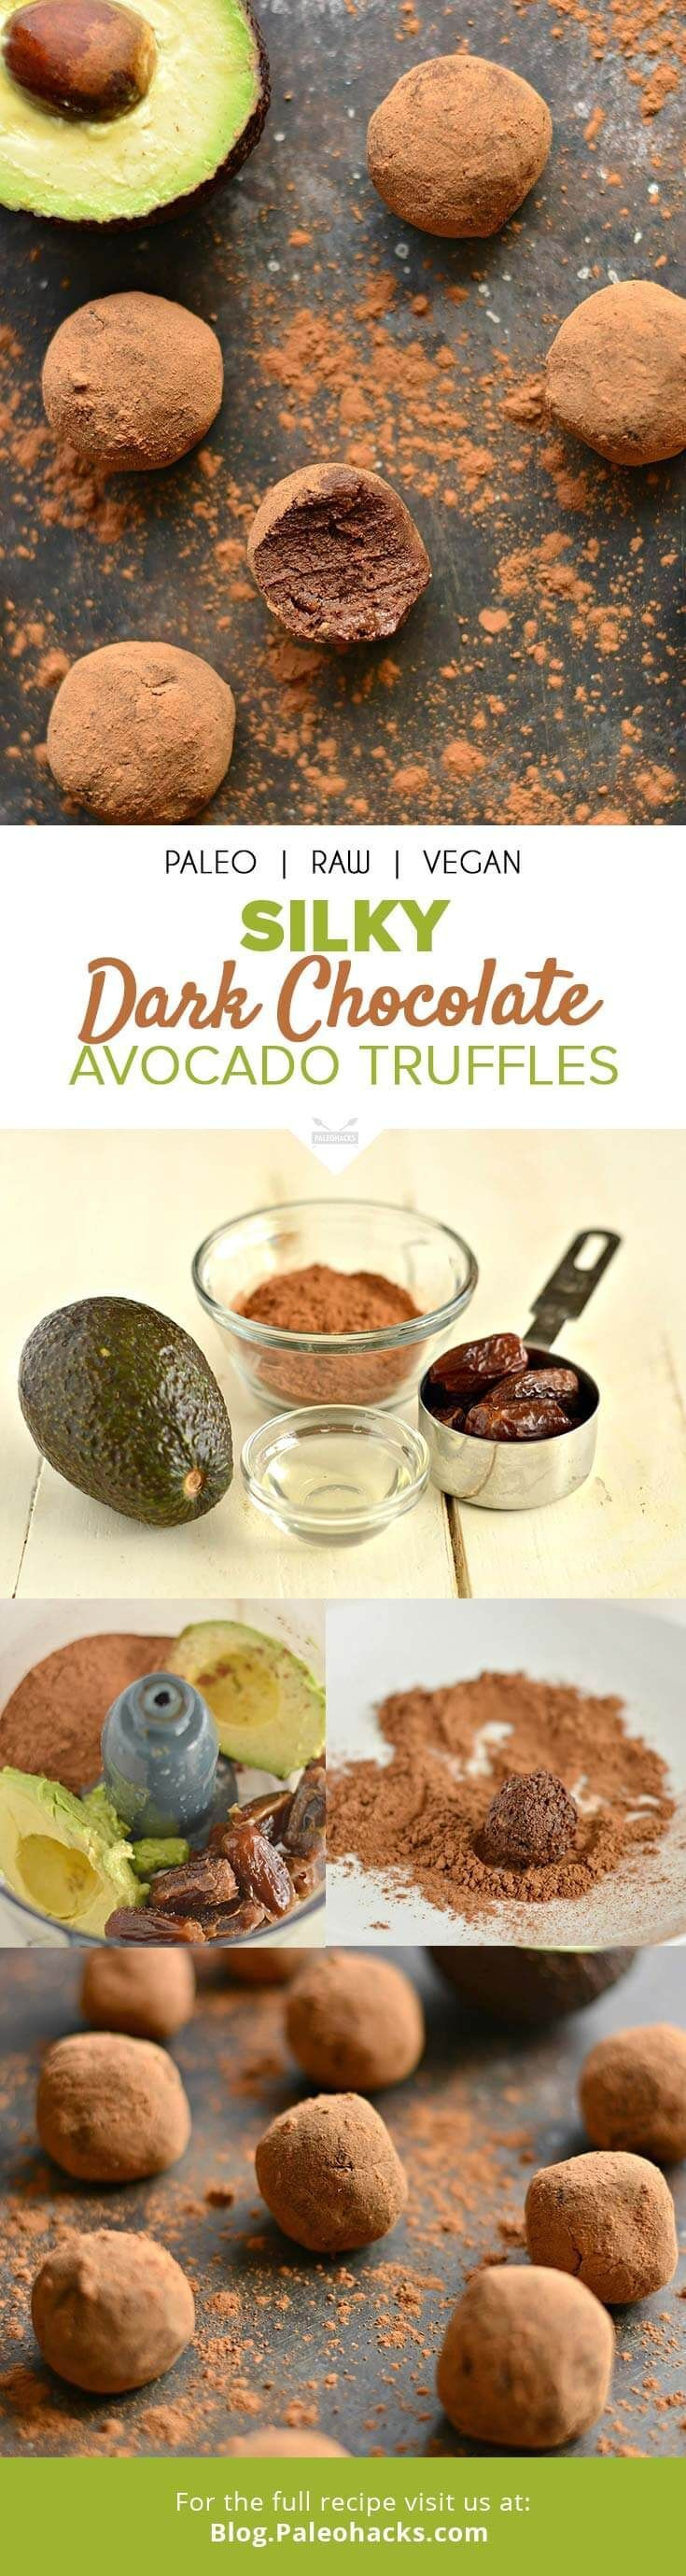 TRAD-PIN-Silky-Dark-Chocolate-Avocado-Truffles.jpg